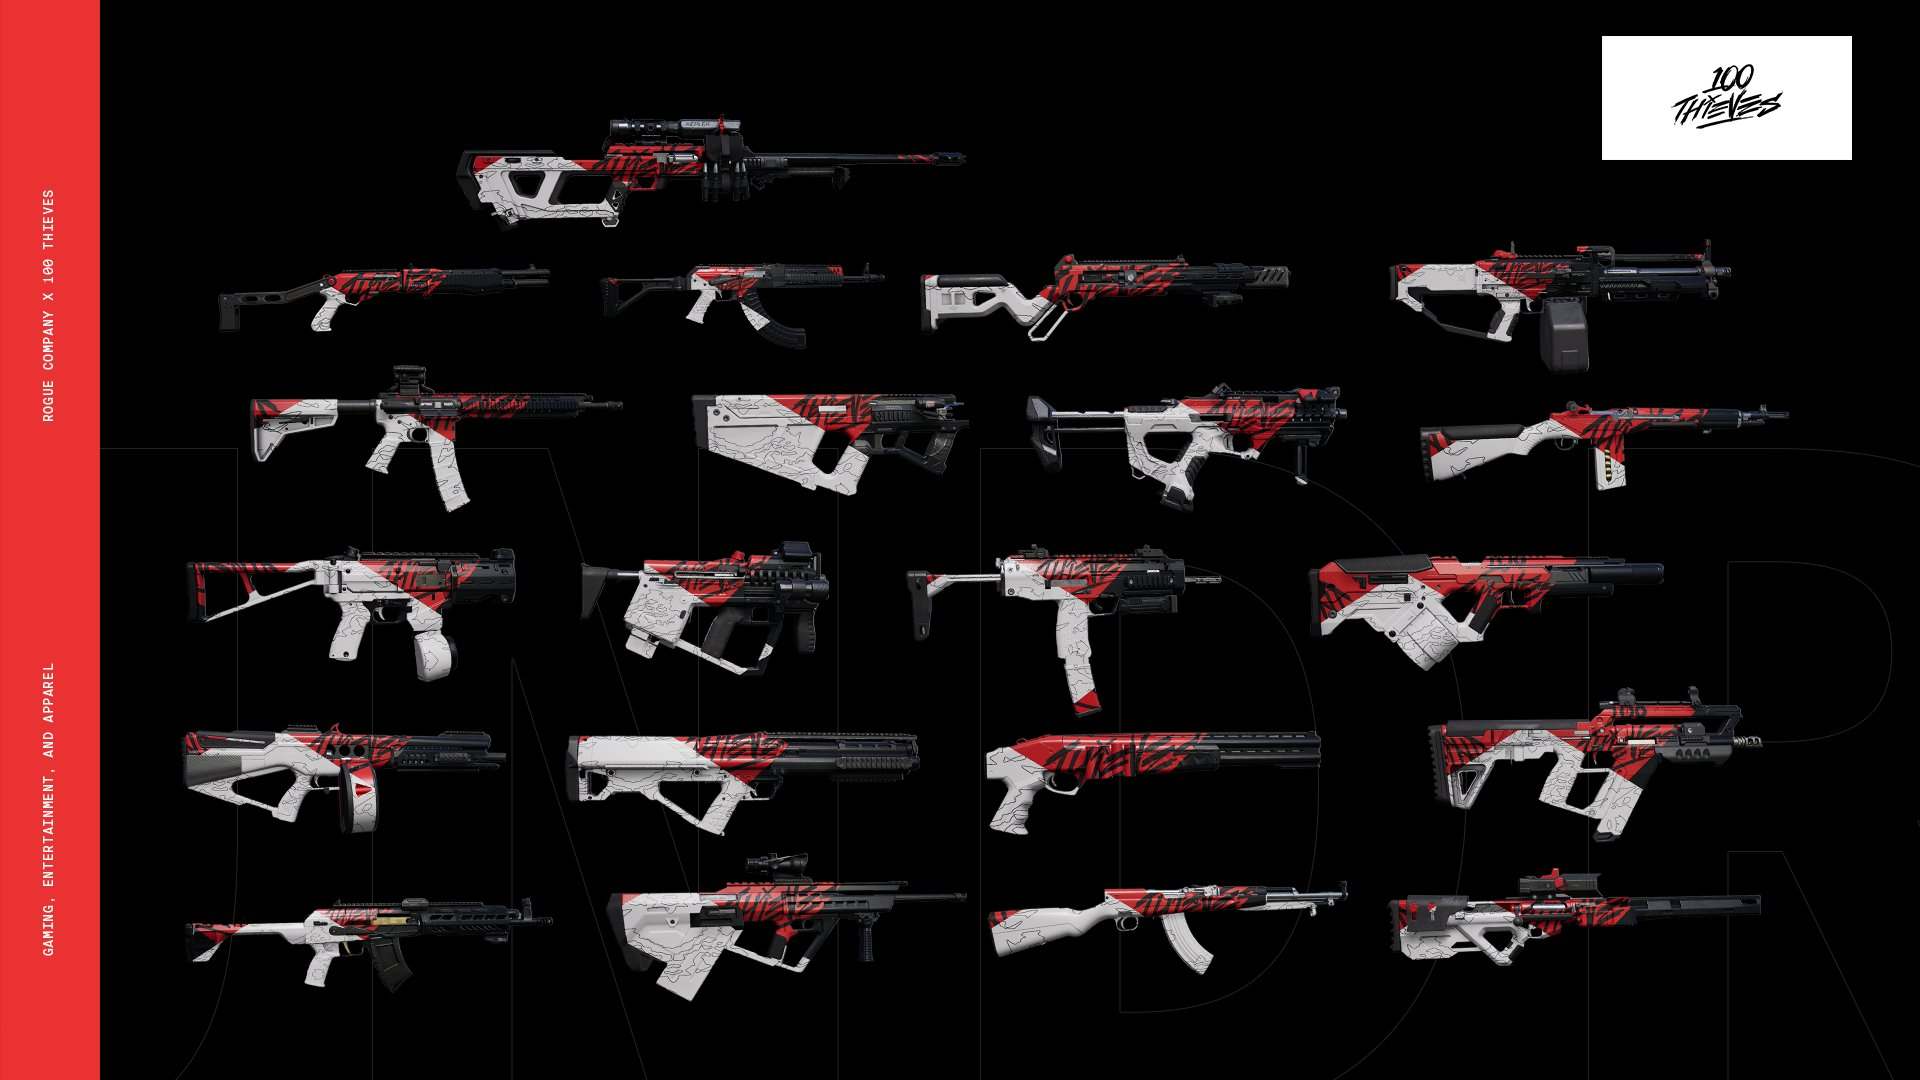 100 Thieves Rogue Company Weapon skins